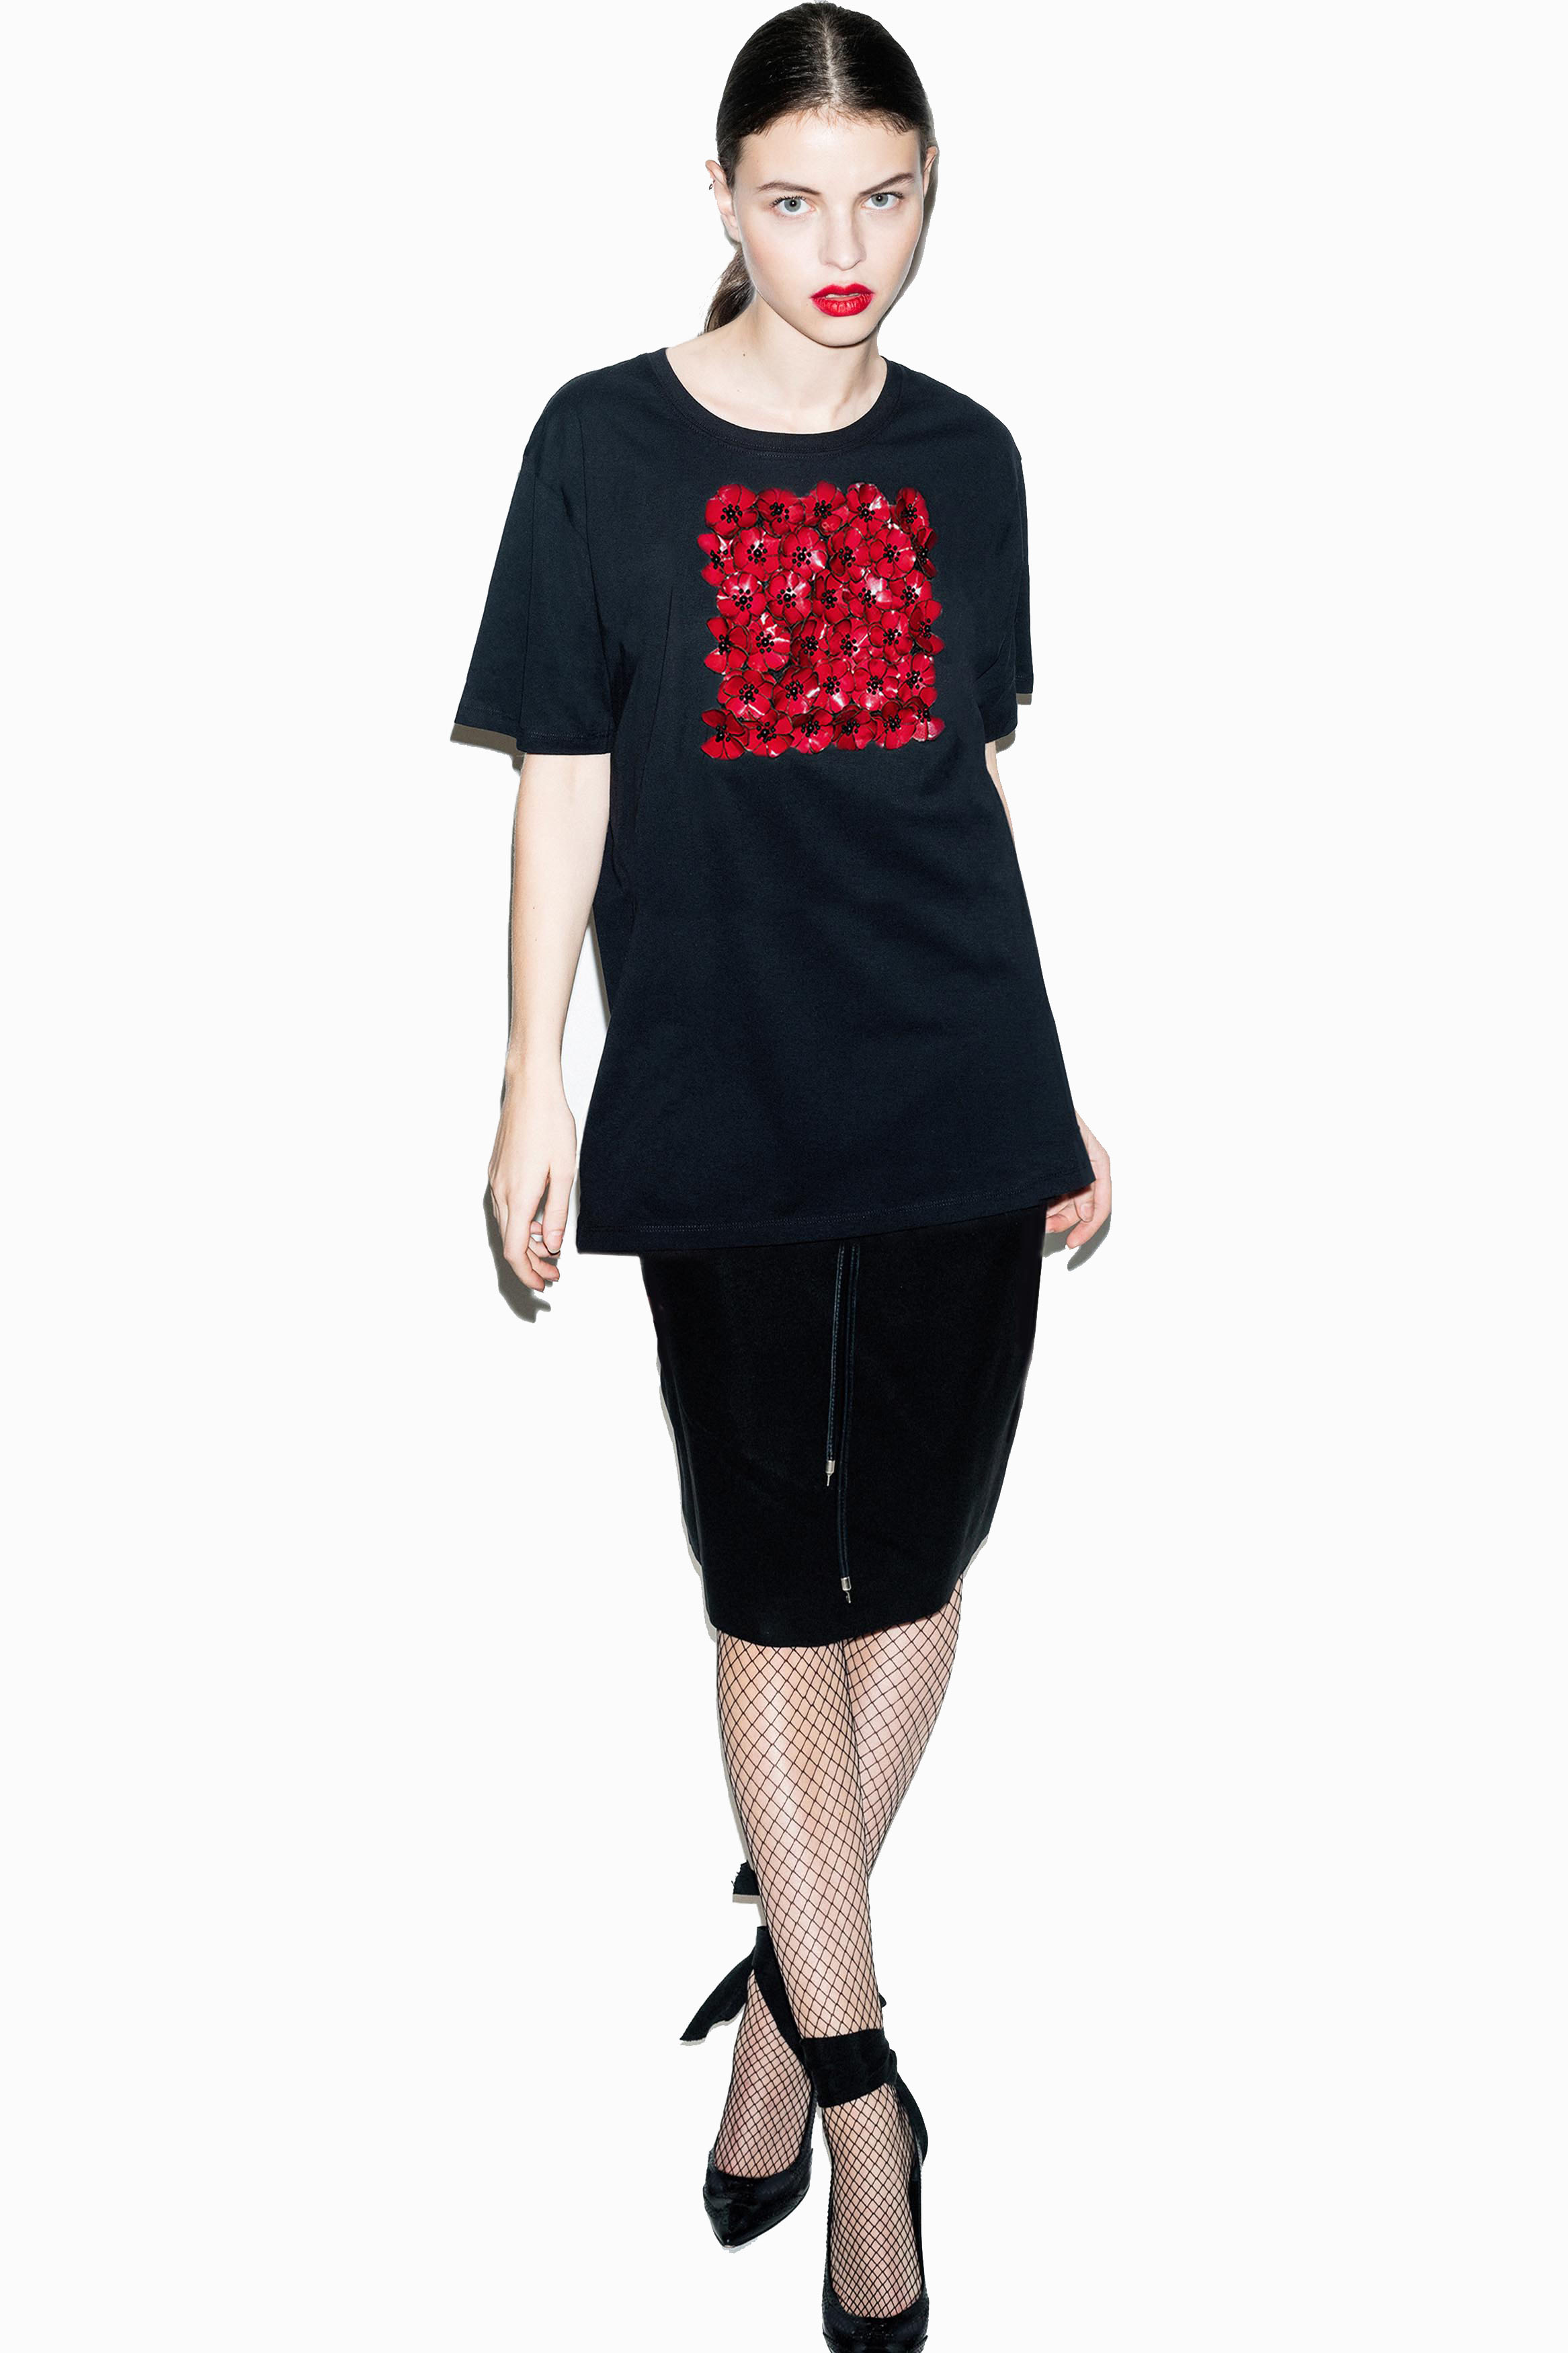 fflag-tee-shirt-long-poppies-ornement-fleurs-sequins-grenat2